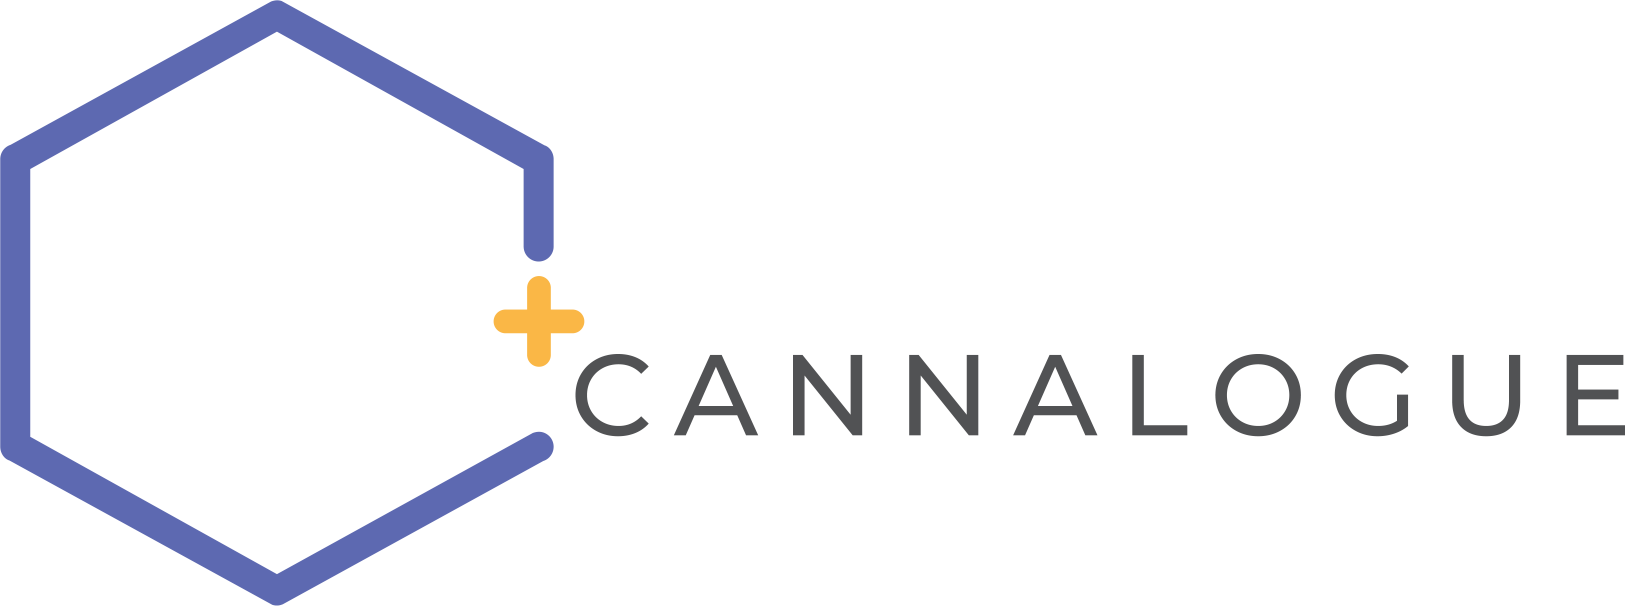 New Cannabis Information Line Launches in Canada